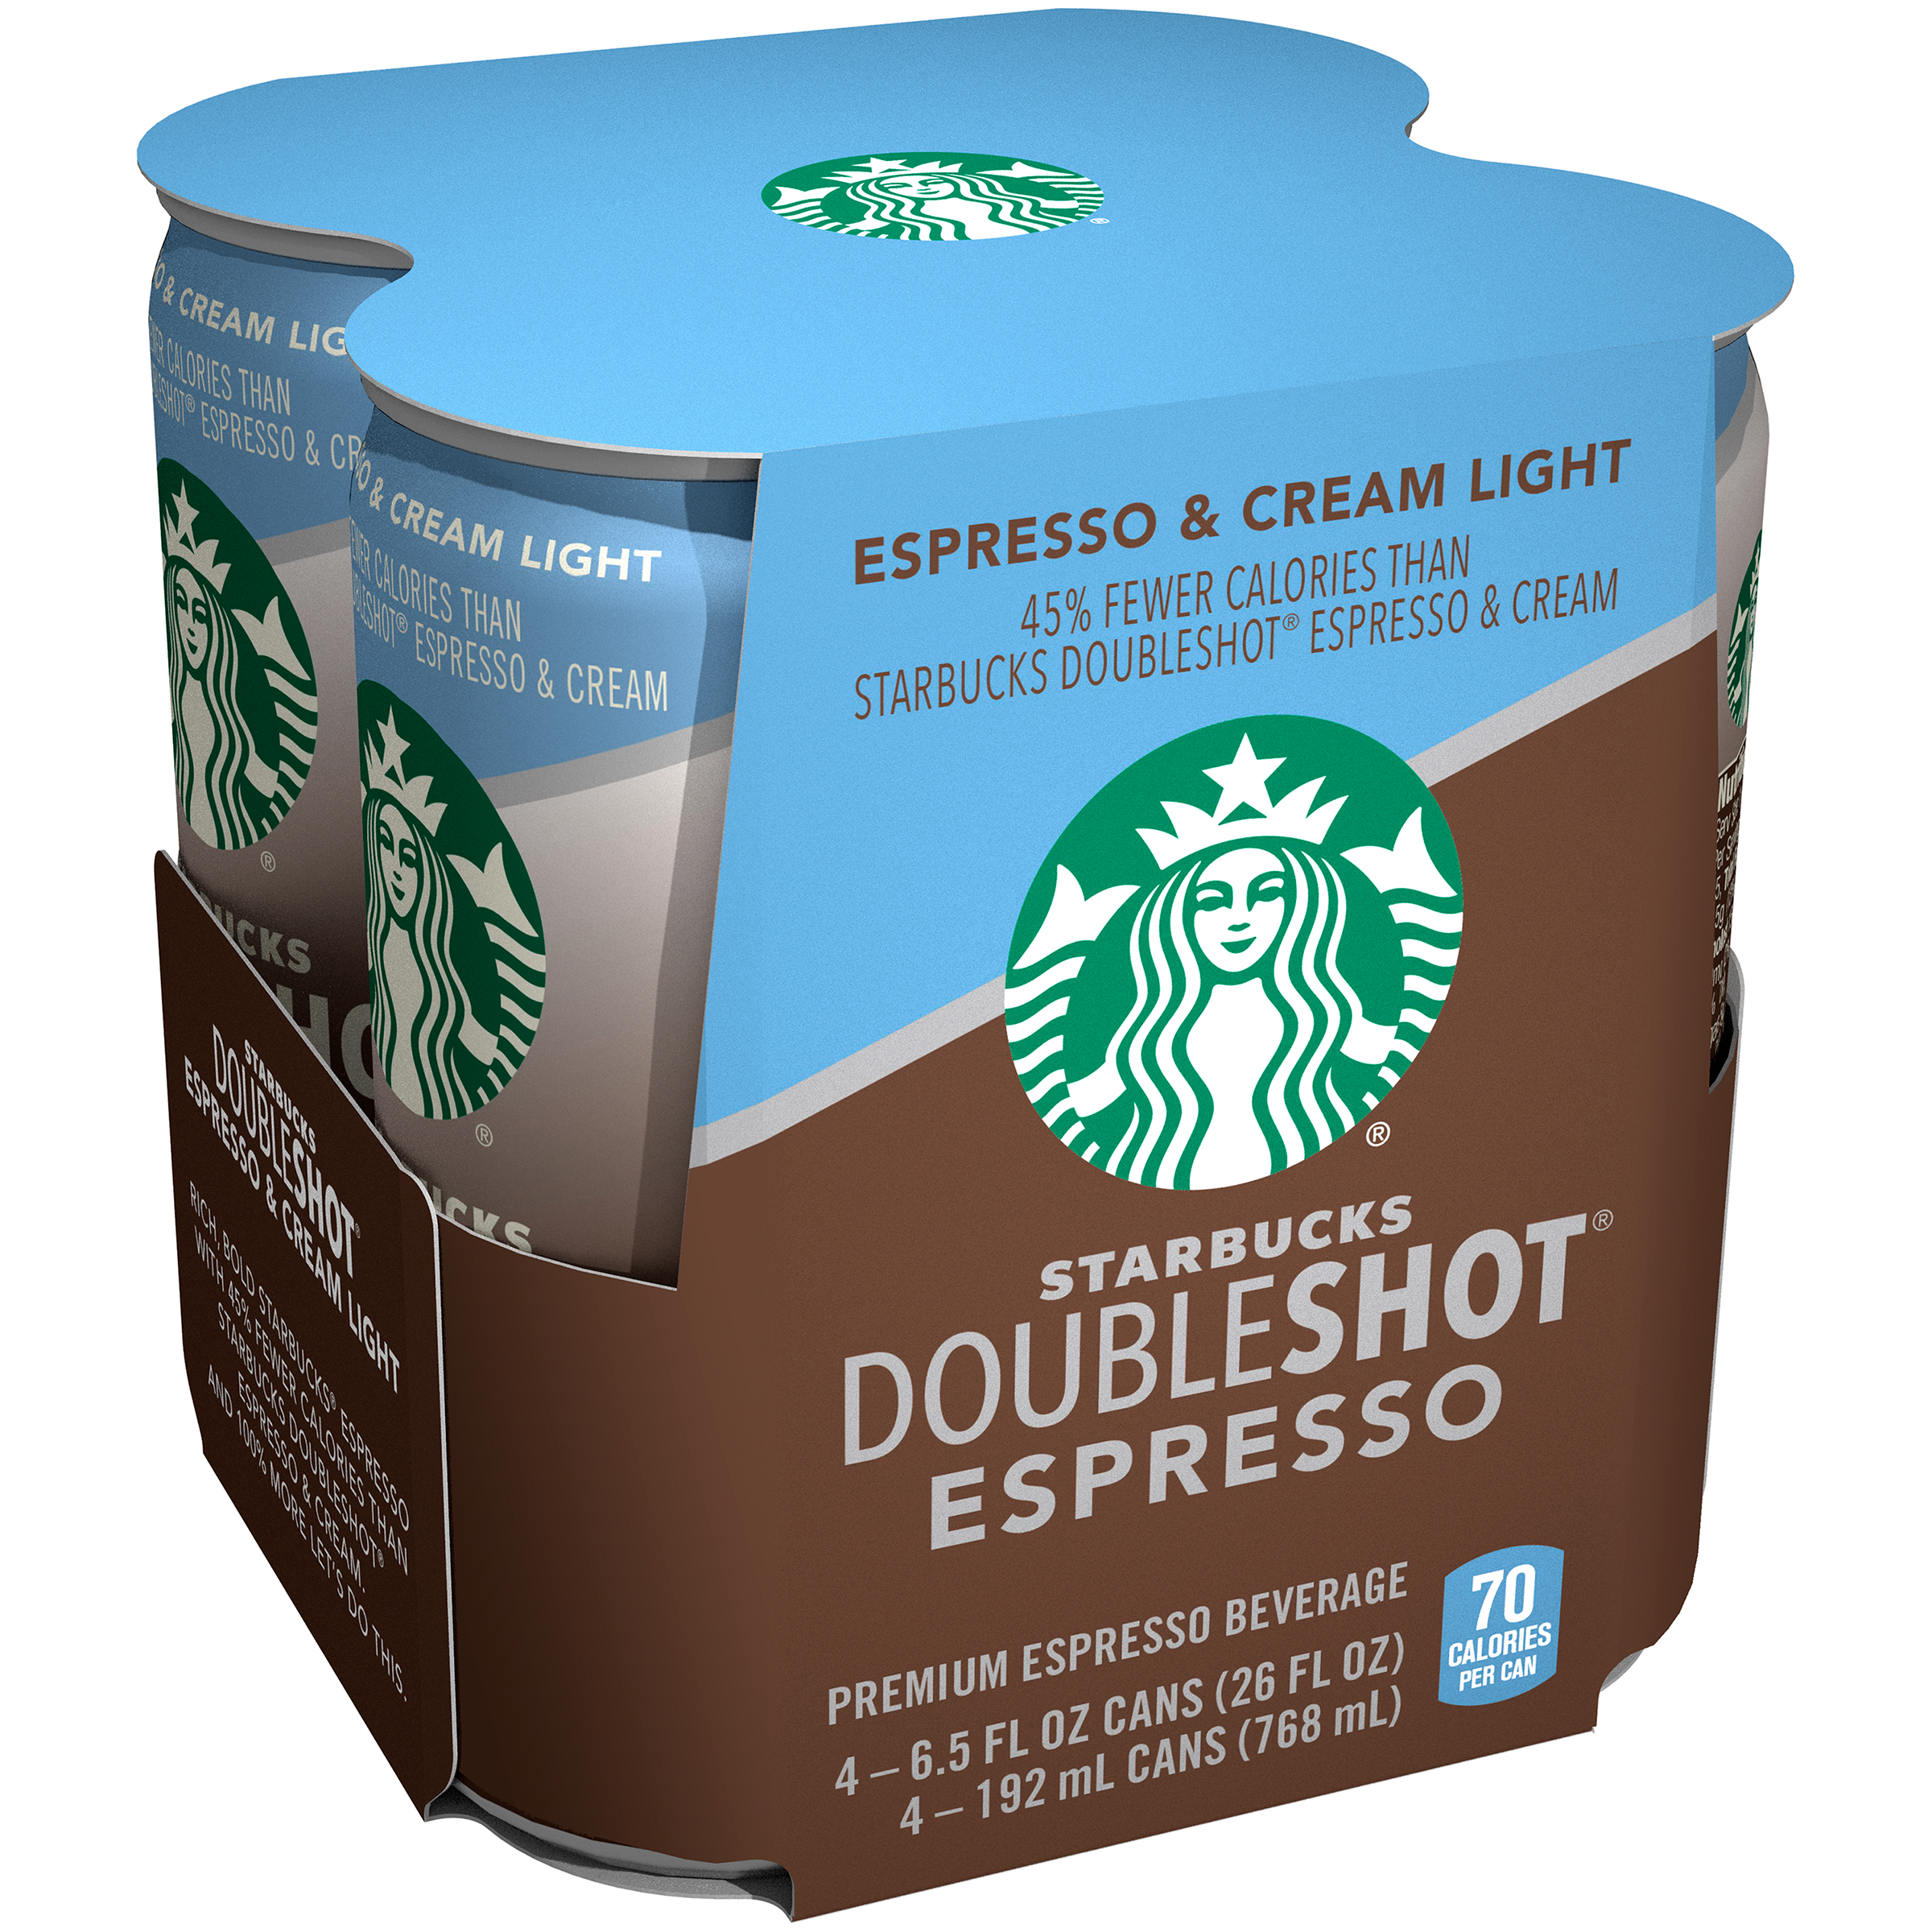 Starbucks Doubleshot® Espresso & Cream Light Coffee Drink 4-6.5 fl. oz. Can